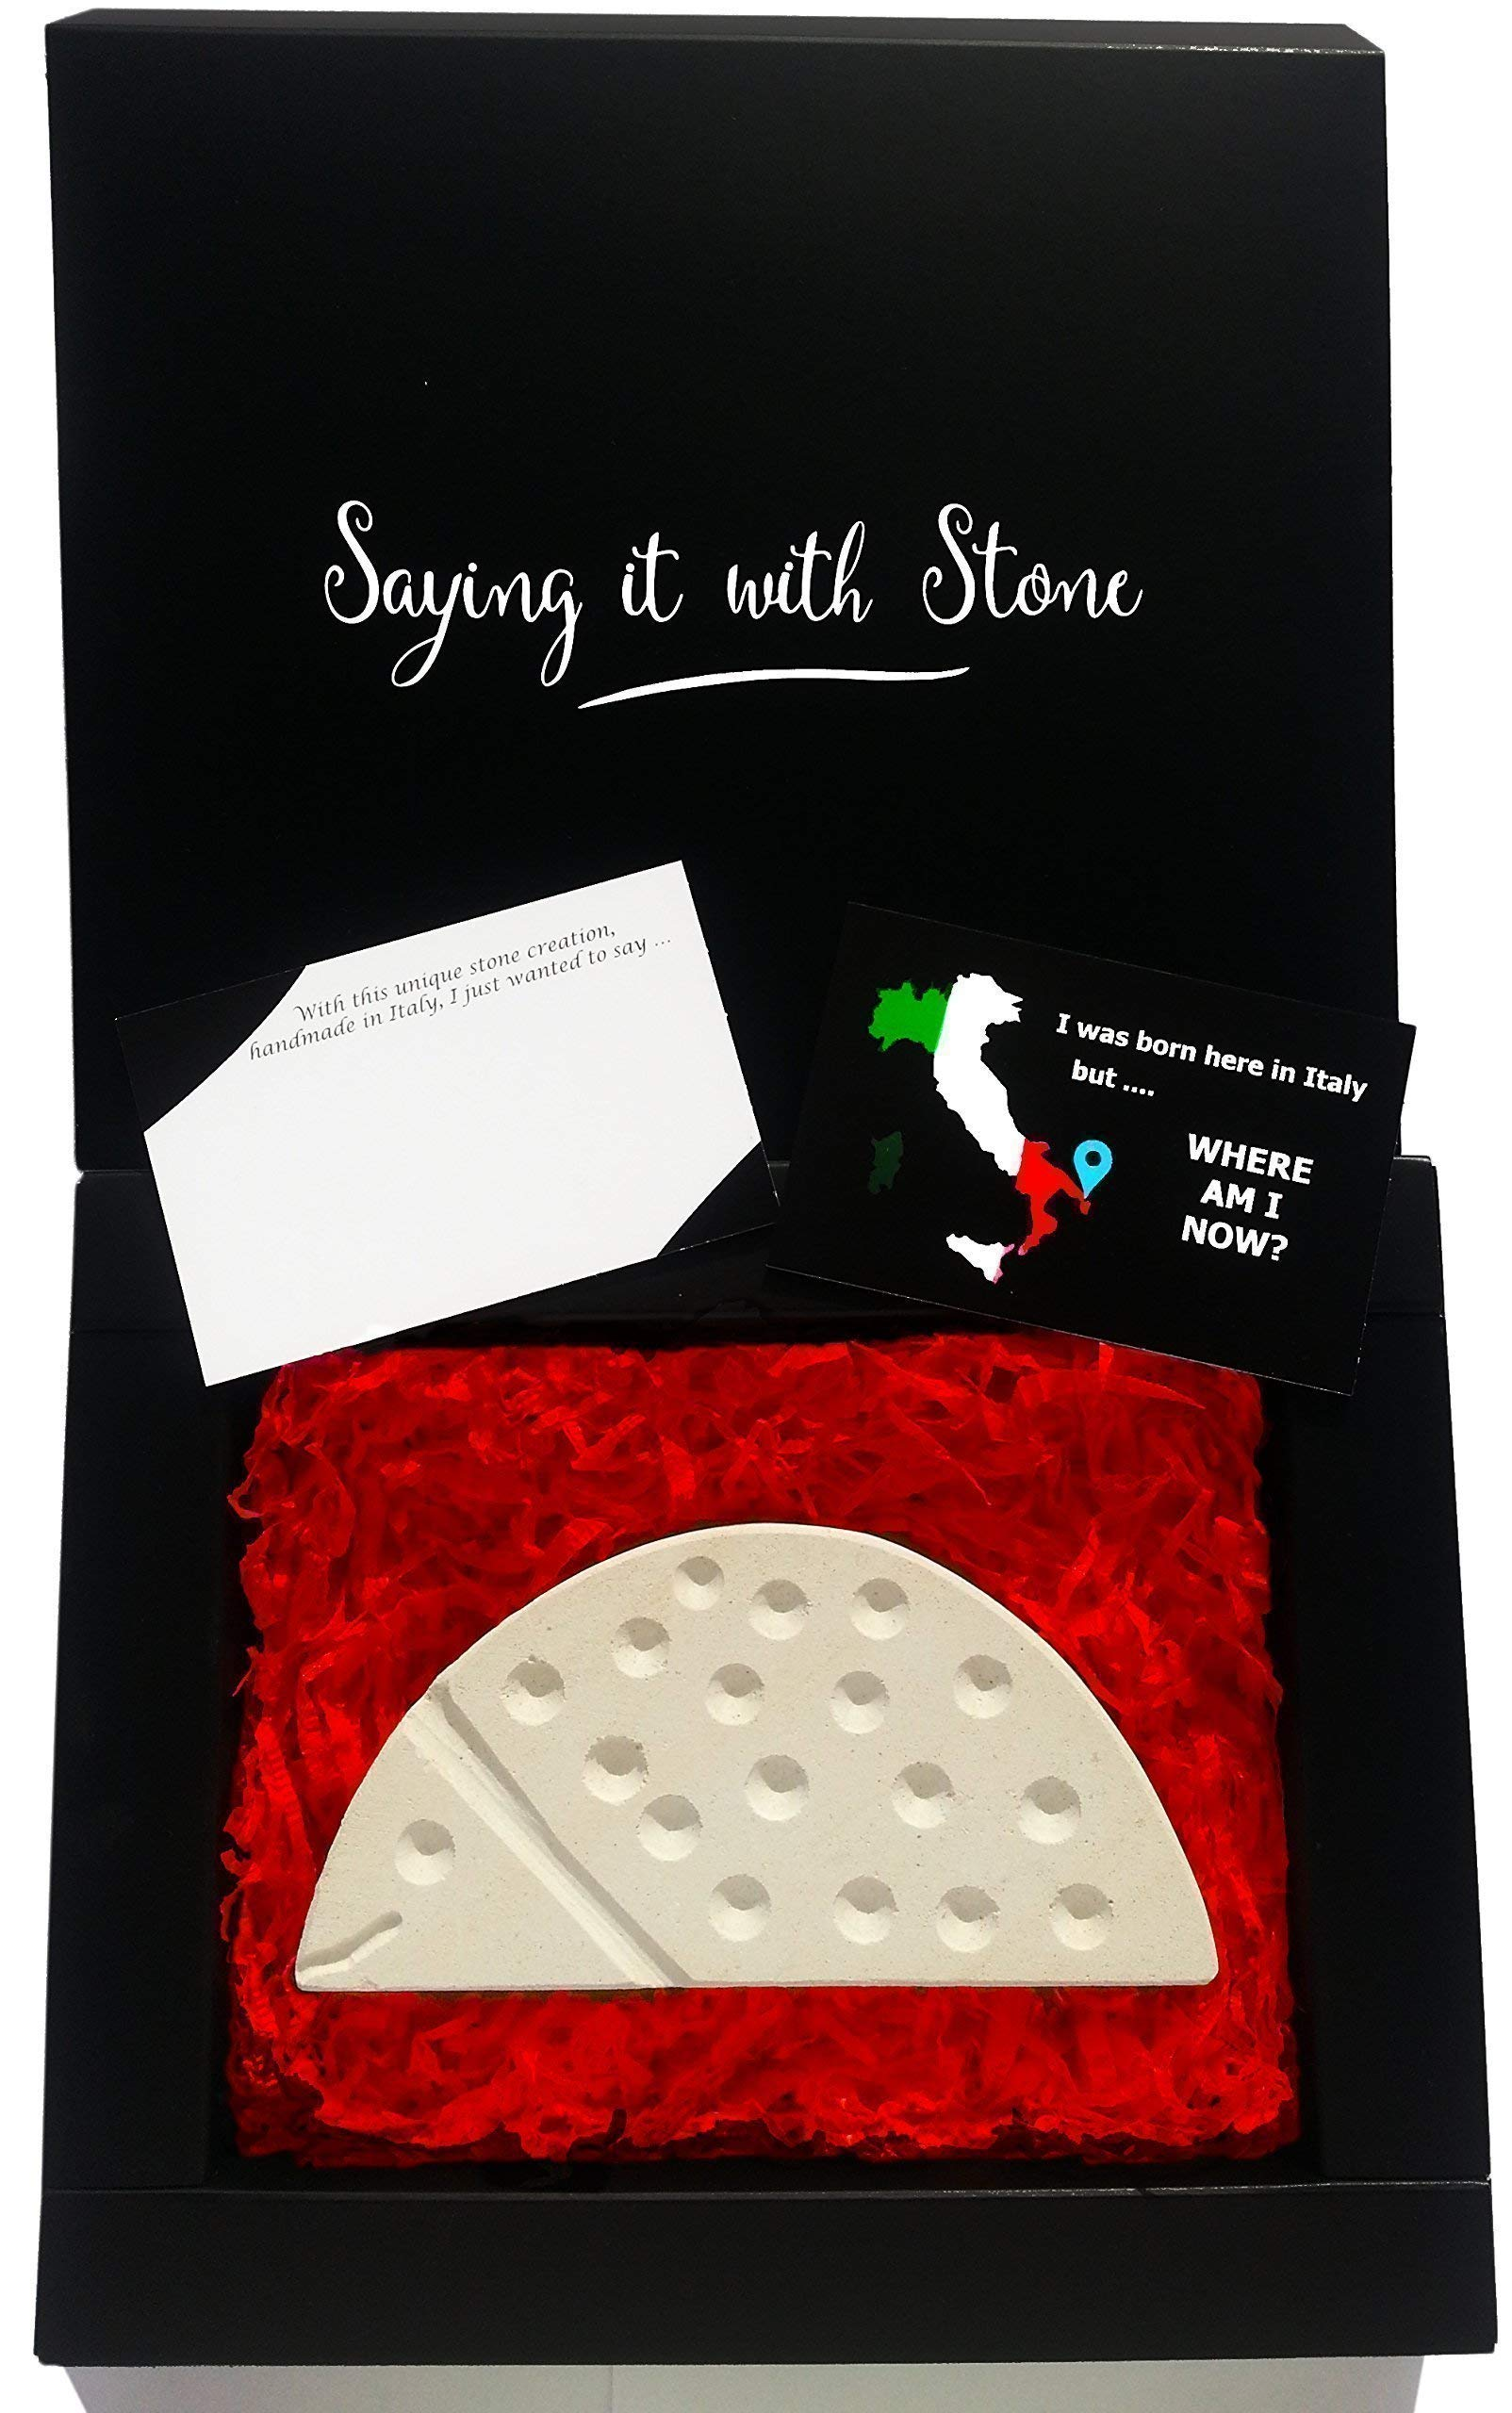 Stone Ladybug - Symbol of Good Luck, Love & Positivity ❤ Gift box & blank message card included - lucky charm ideas for university college exams new job house driving test